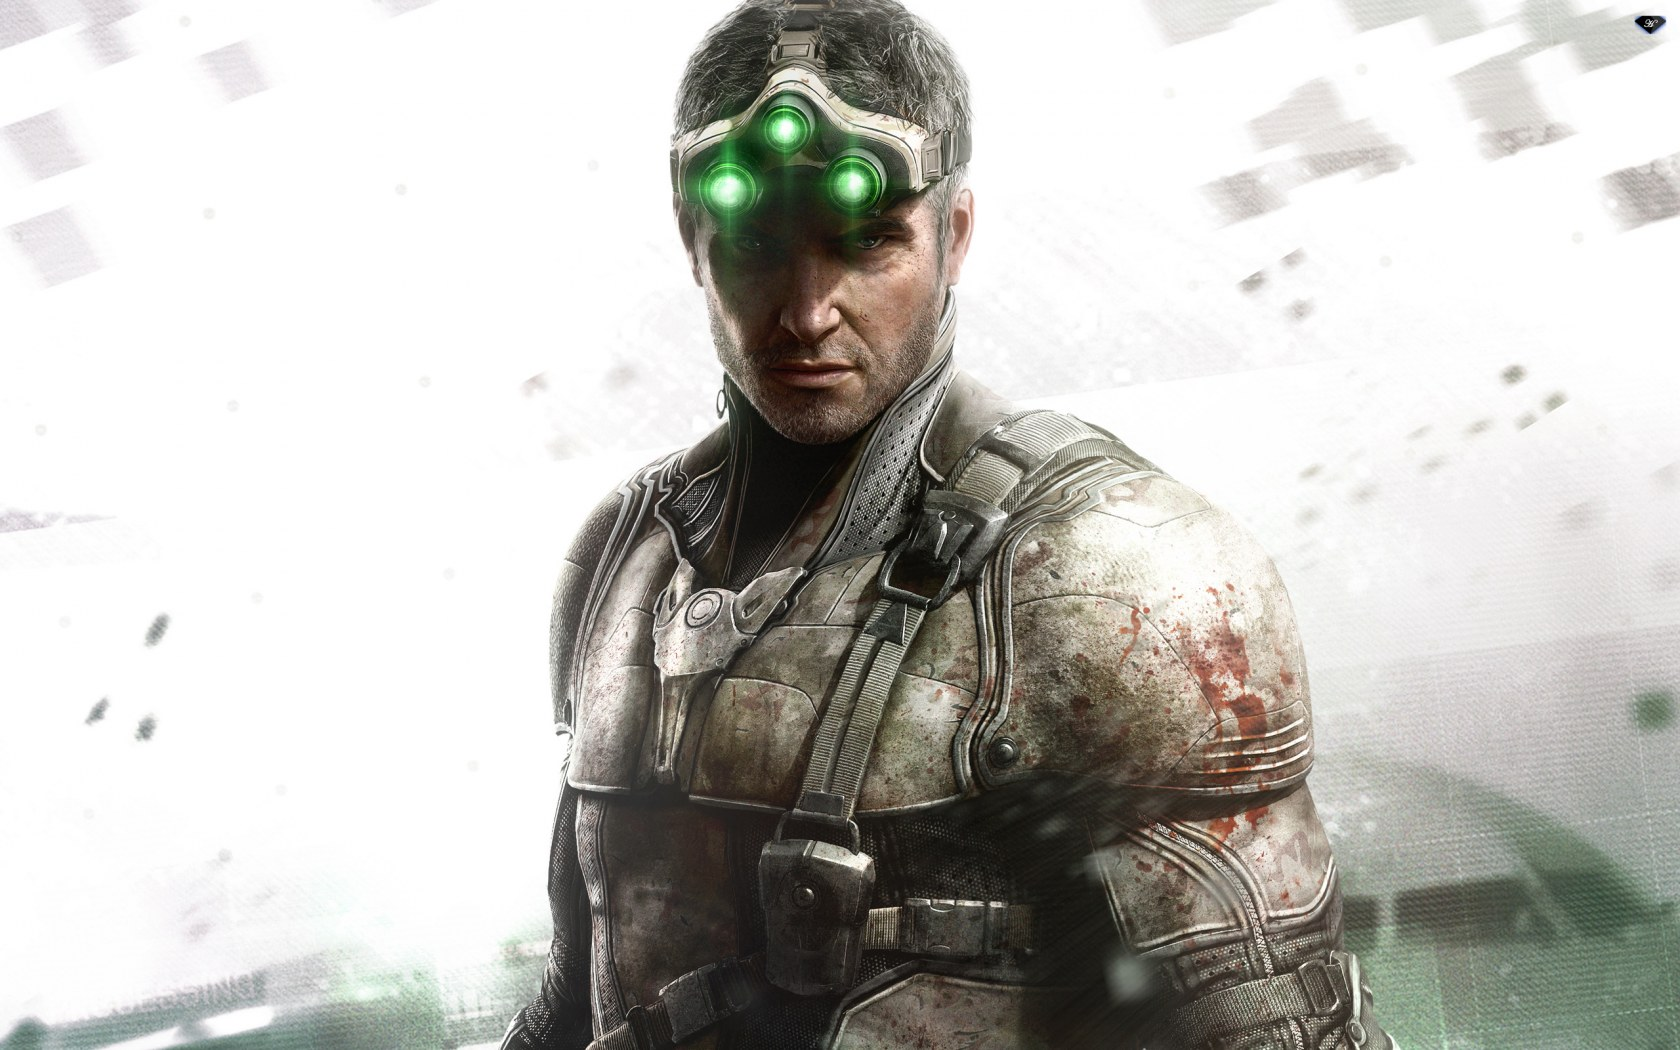 Splinter Cell & Assassin's Creed VR Titles In Development